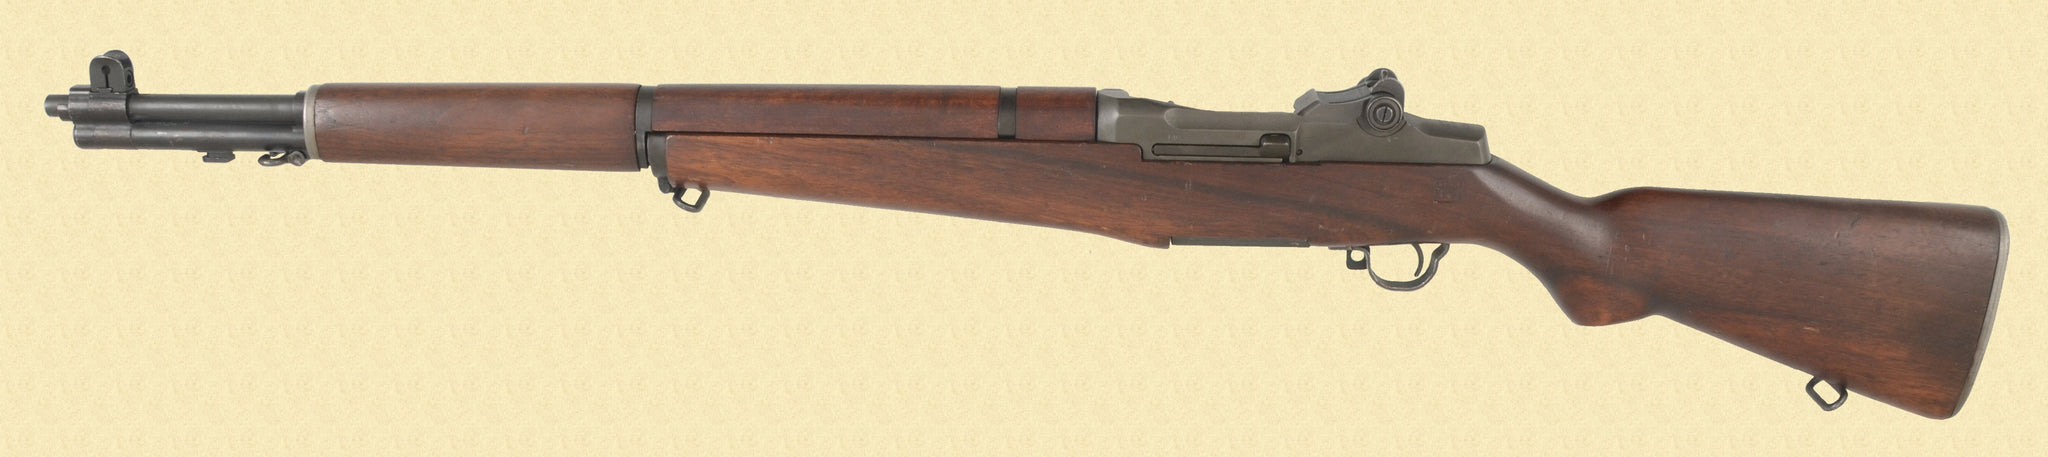 H&R ARMS CO M1 GARAND